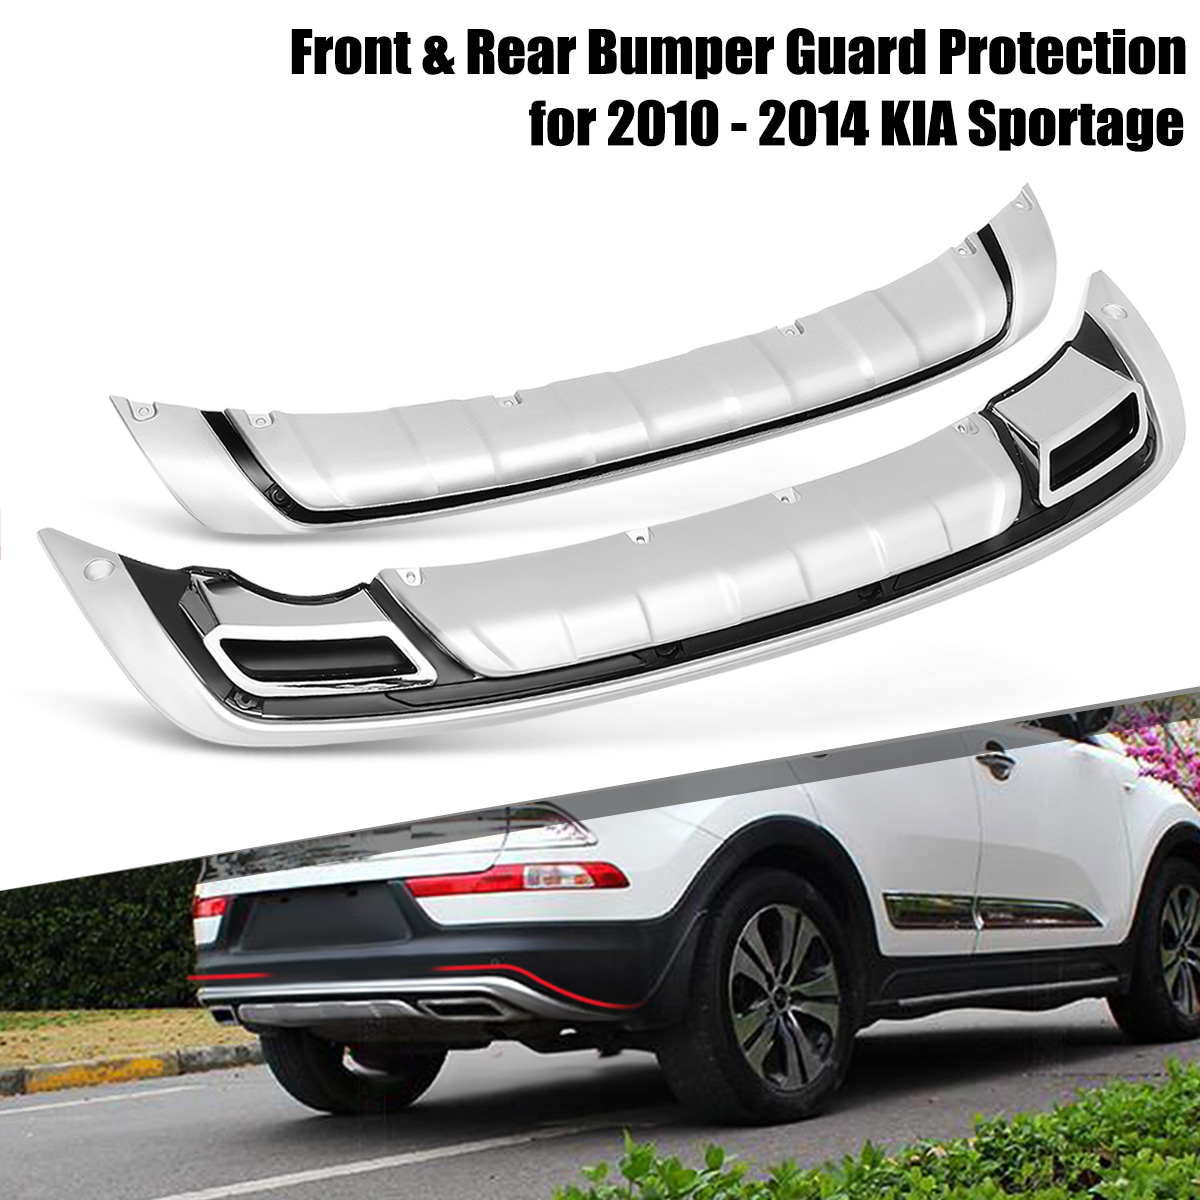 Car Front and Rear Bumper Guard Board Protection for KIA Sportage R 2010-2014Car Front and Rear Bumper Guard Board Protection for KIA Sportage R 2010-2014